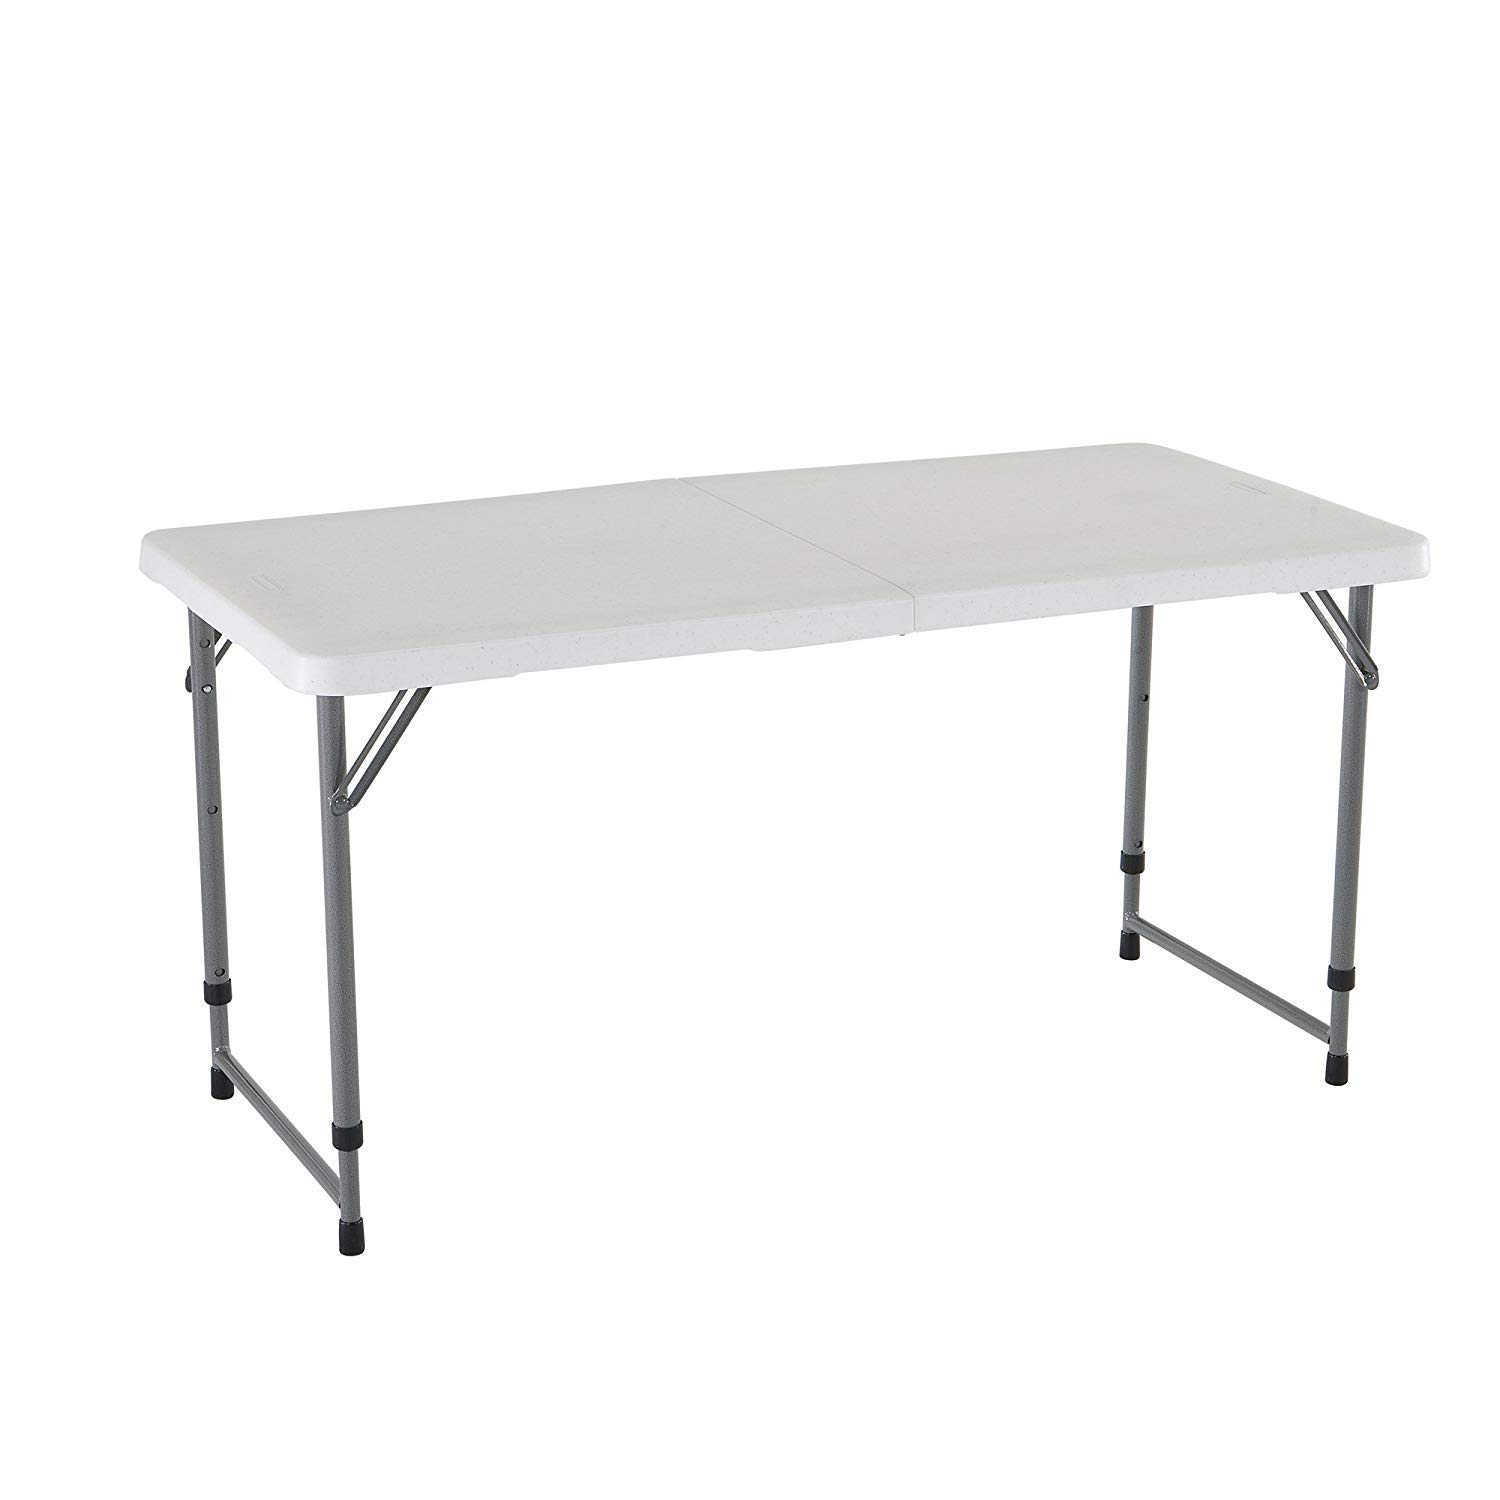 Lifetime 4428 Height Adjustable Craft, Camping and Utility Folding Table, 4 ft White, 3 Pack by Lifetime (Image #1)